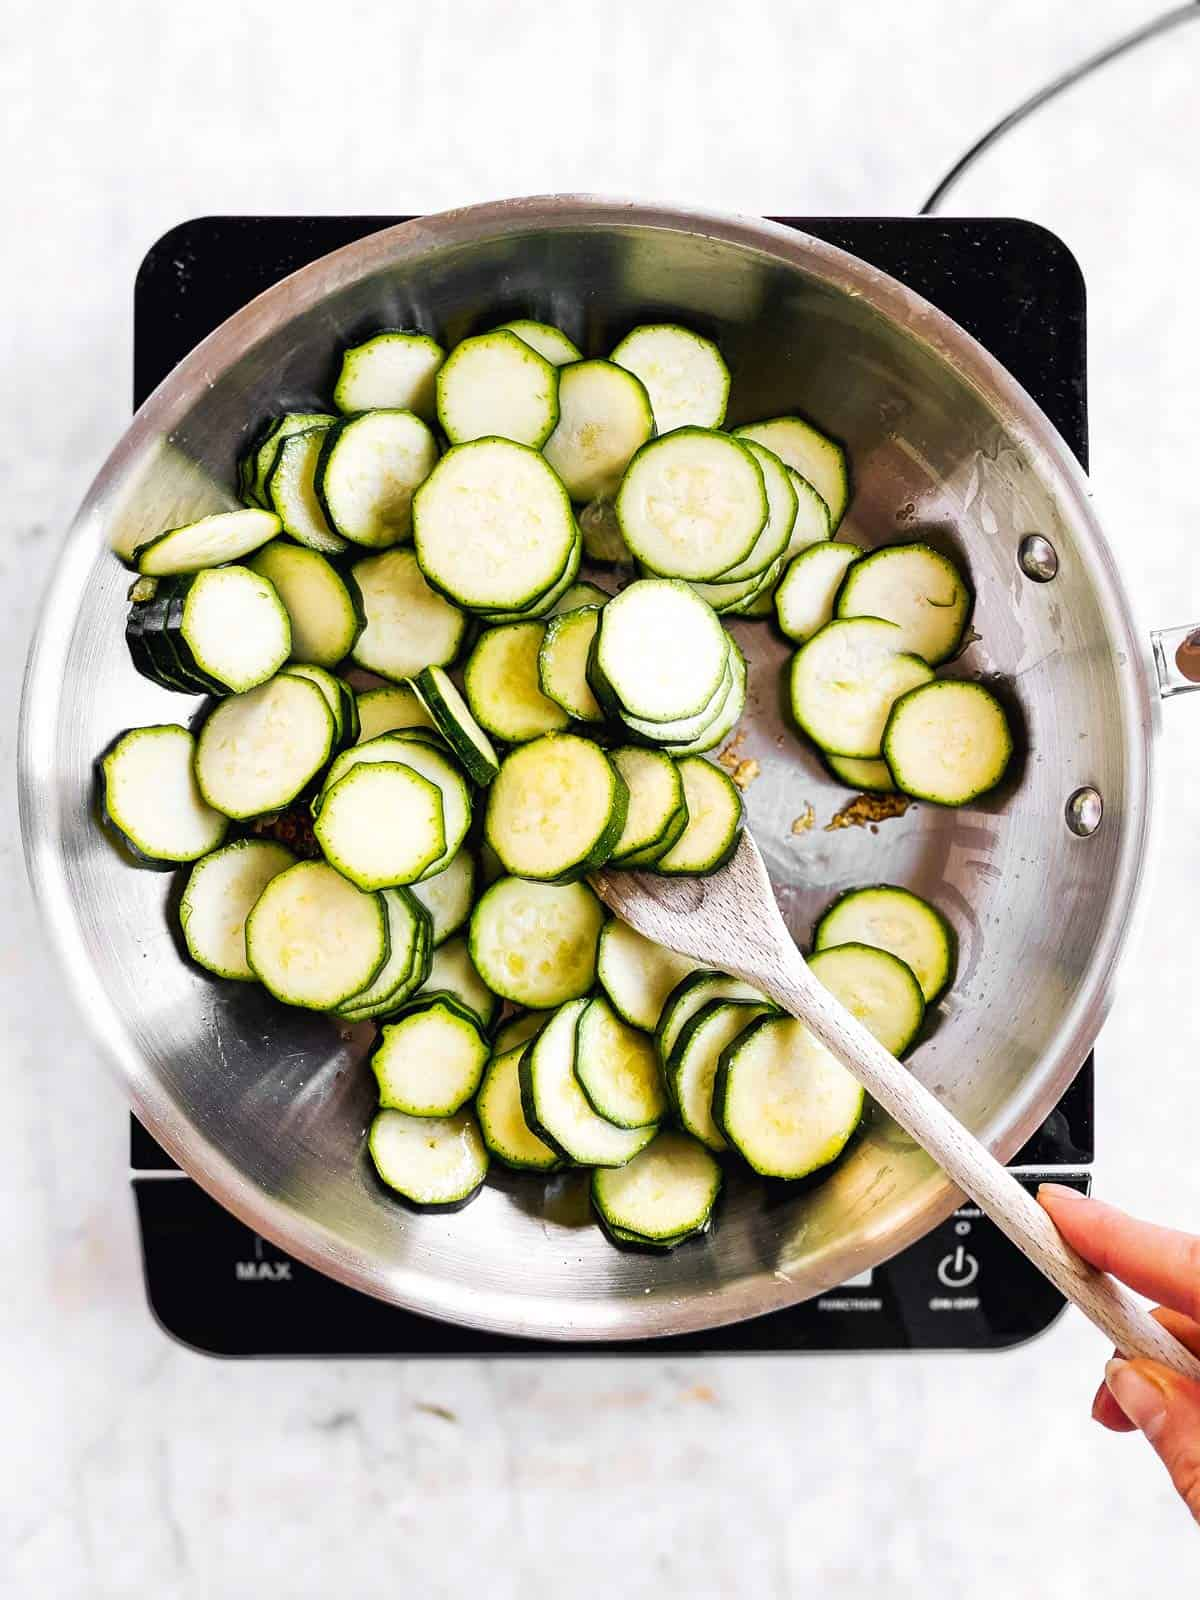 overhead view of raw zucchini slices in skillet